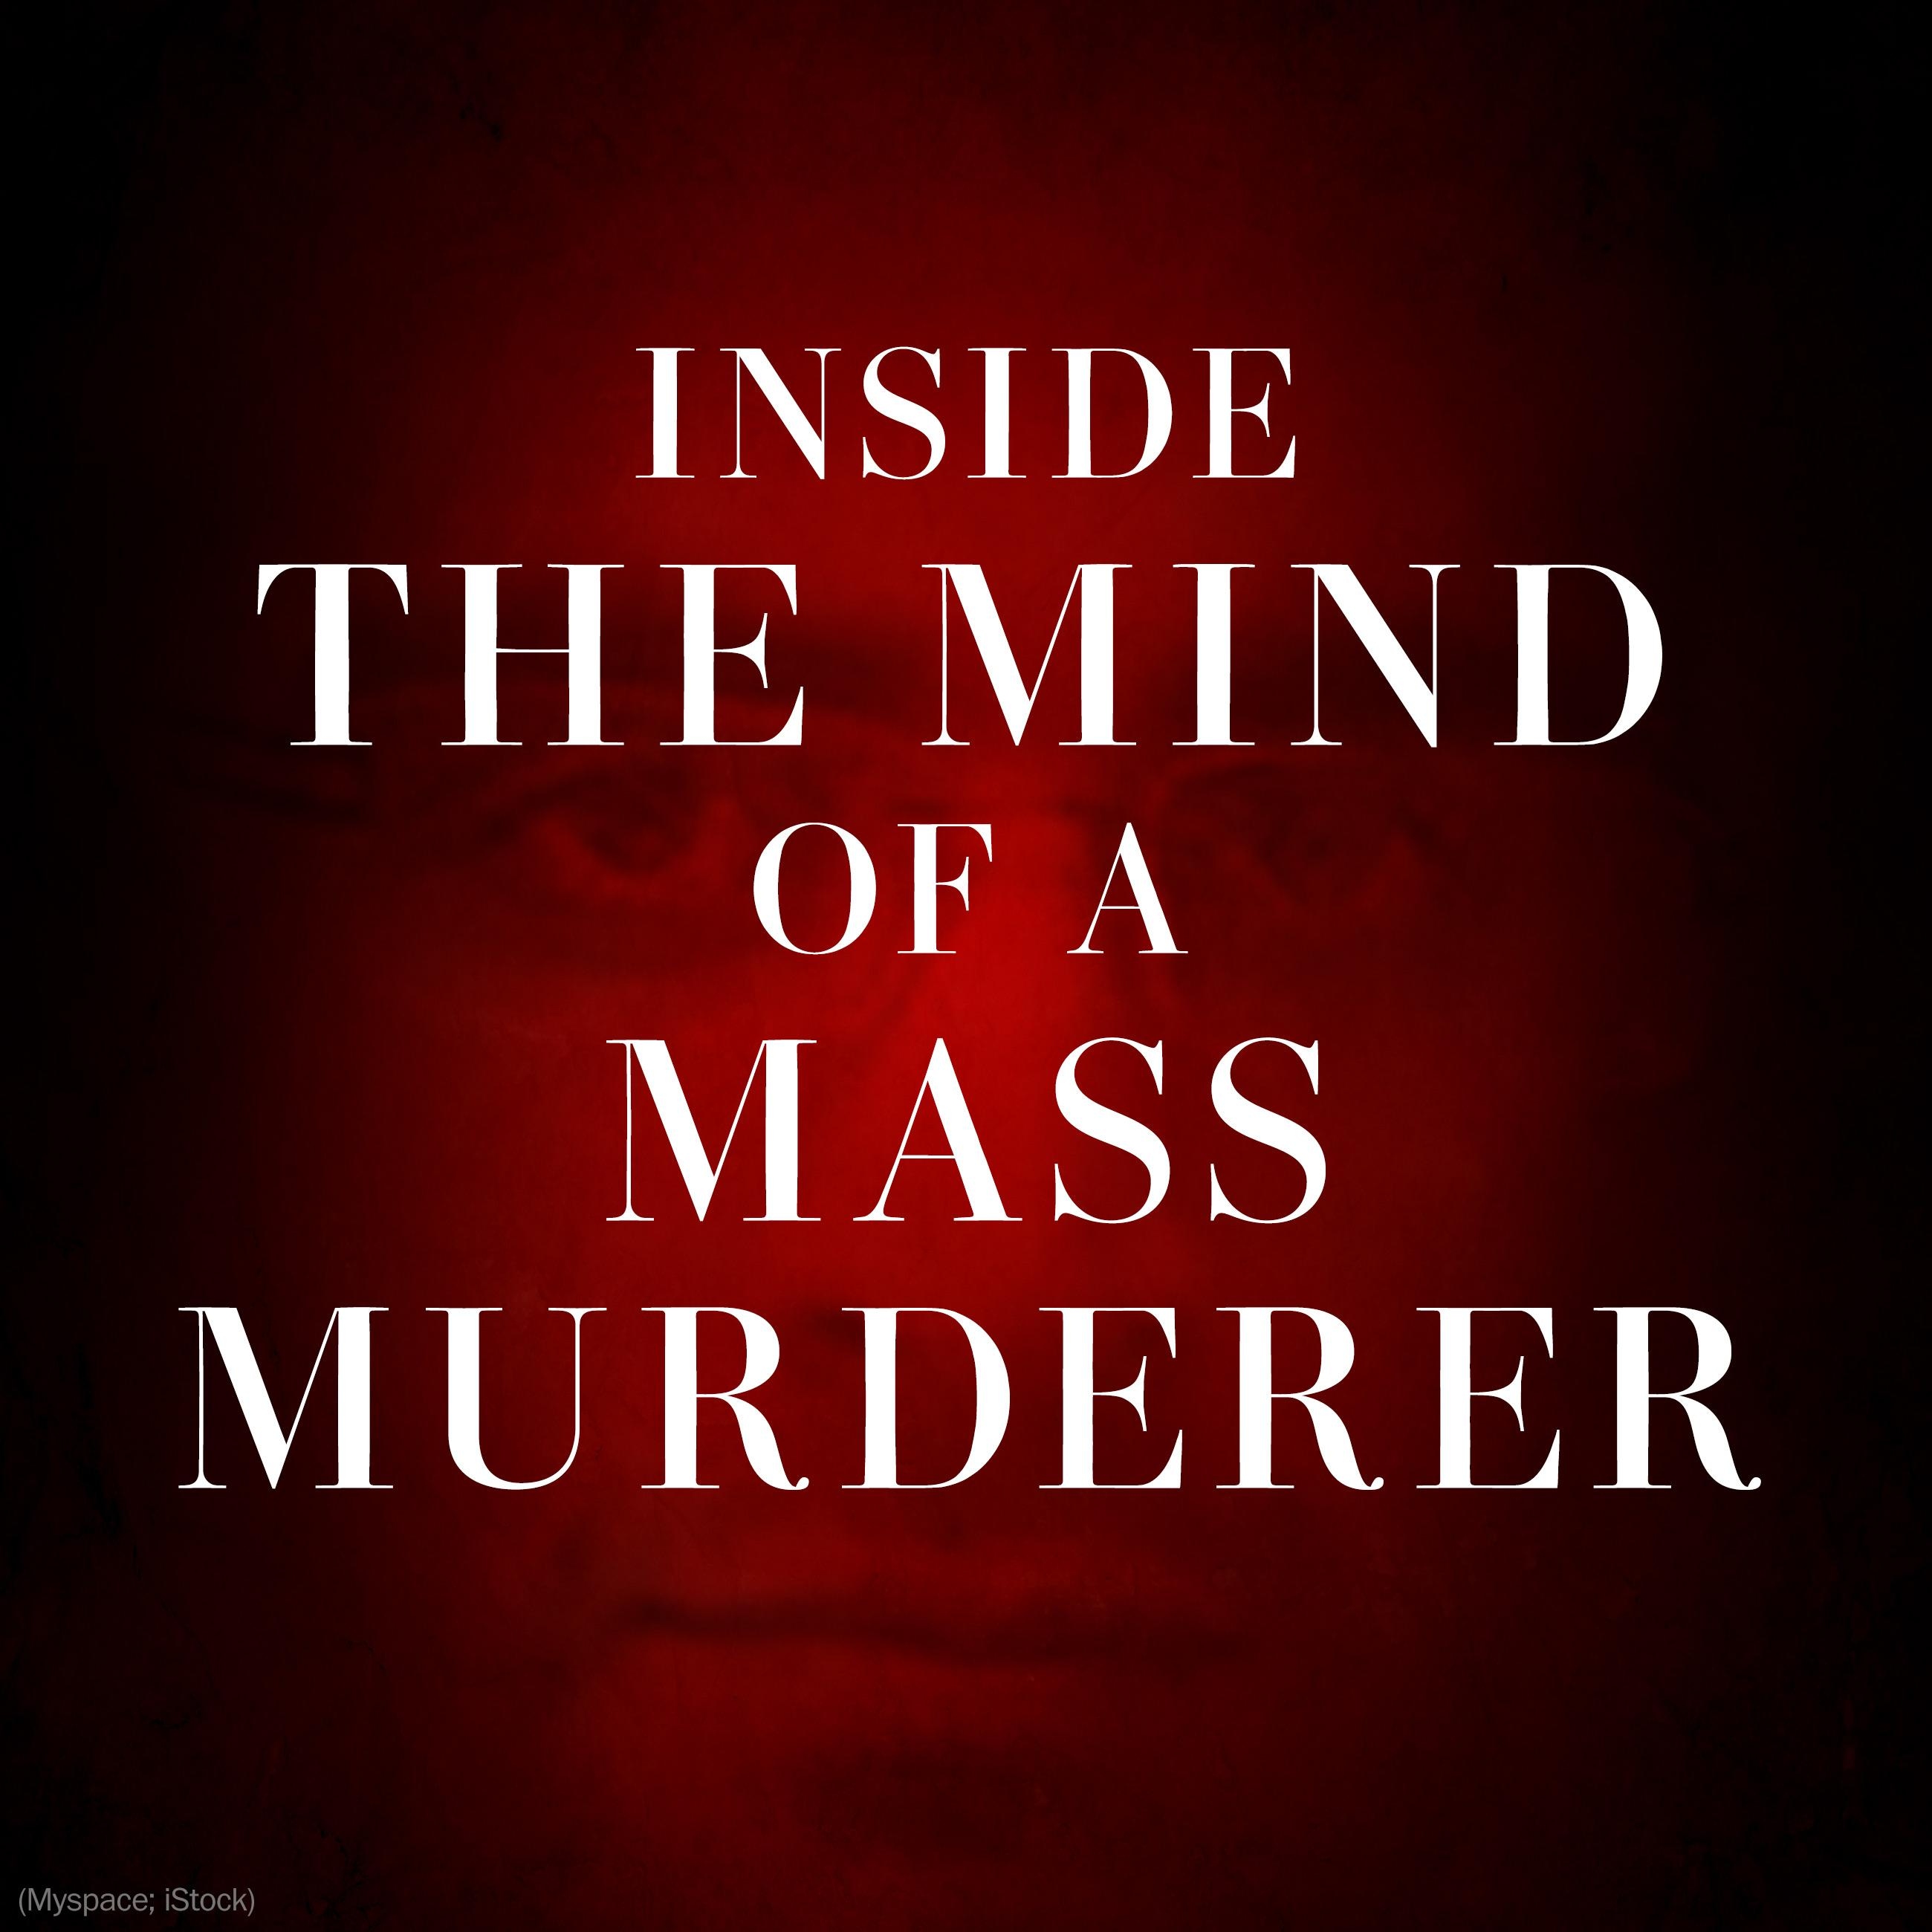 Inside the hate-filled mind of a mass murderer